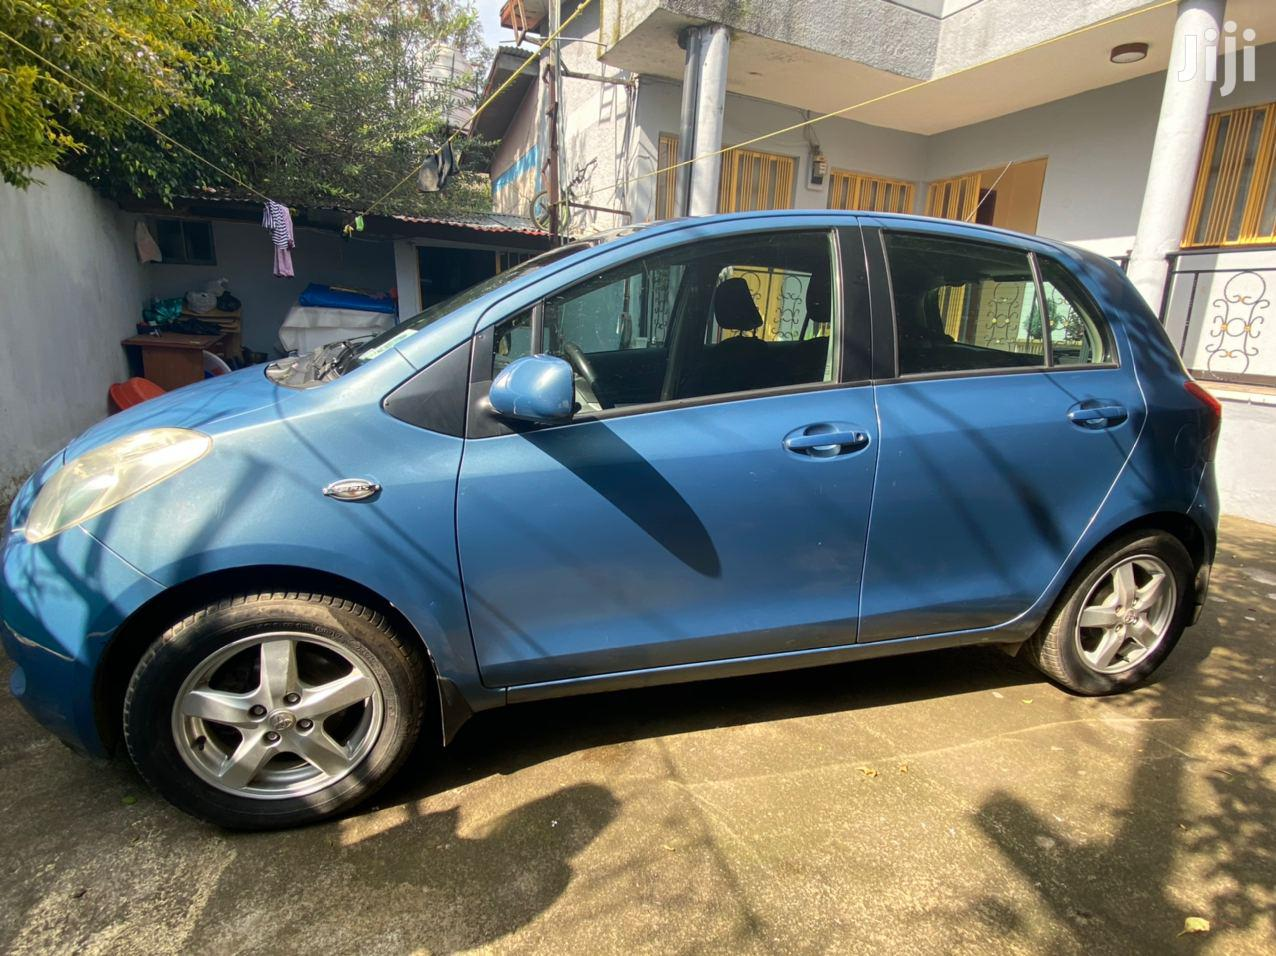 Toyota Yaris 2006 1.0 Blue | Cars for sale in Nifas Silk-Lafto, Addis Ababa, Ethiopia